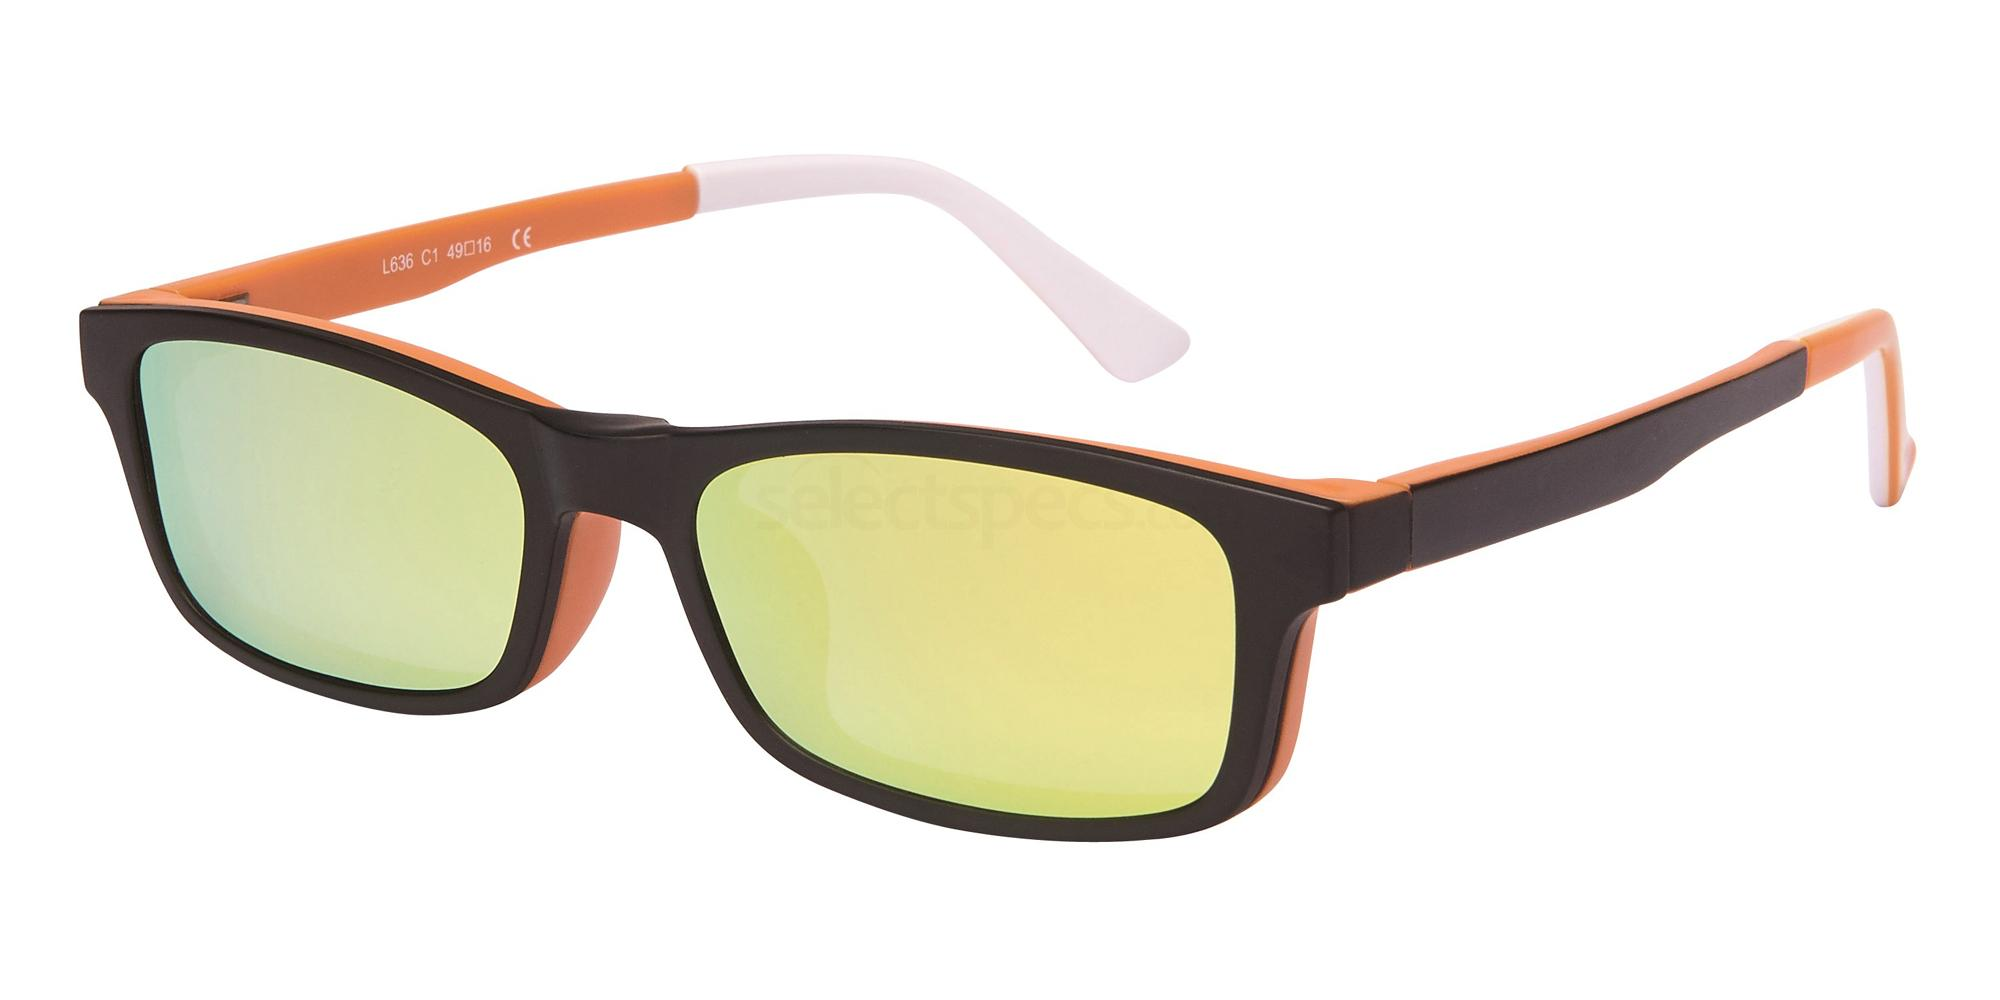 C1 L 636 - With Clip on Glasses, Loox